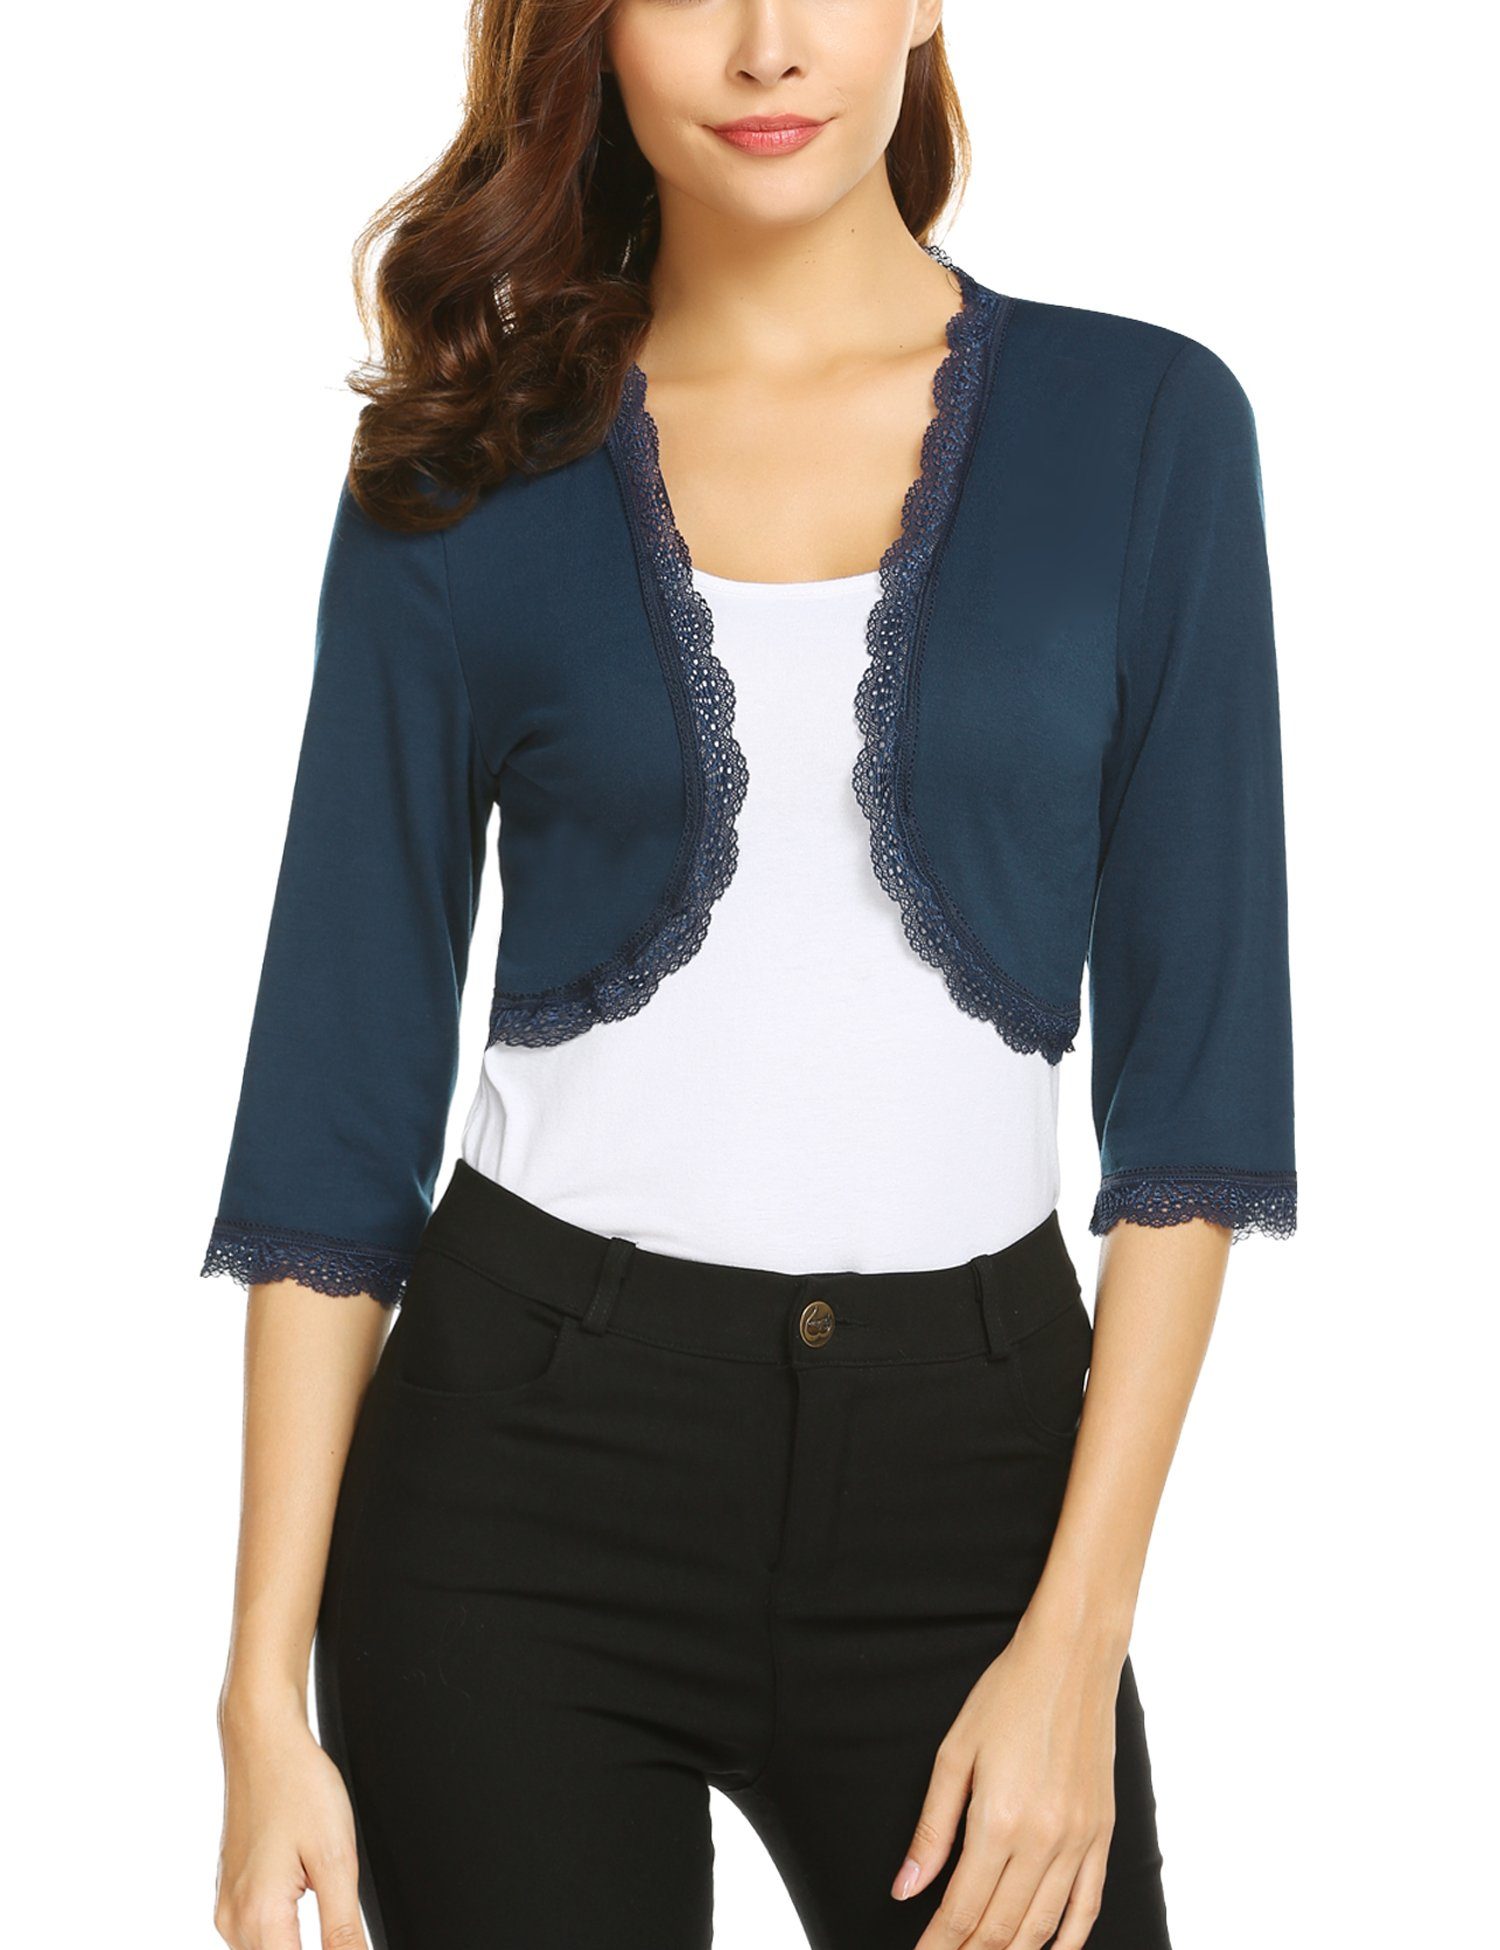 Pinspark Women's 3/4 Sleeve Shrug Open Front Lace Trim Crop Cardigan Bolero Jacket (Blue, XXL)